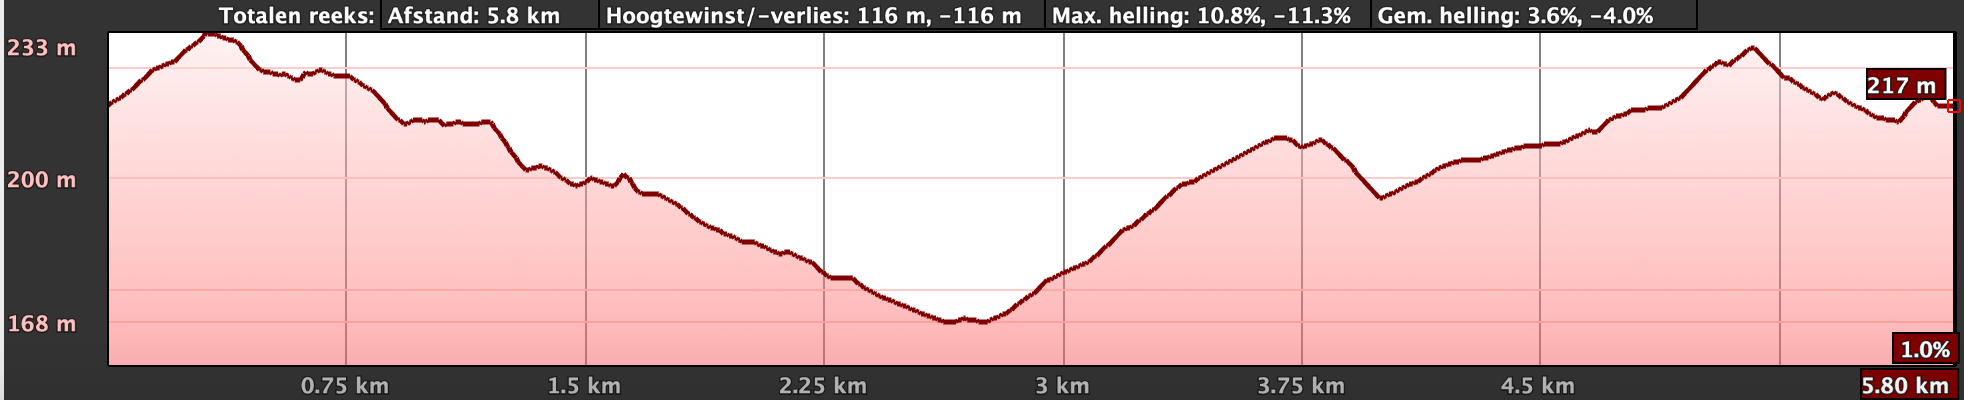 Hayterdale trailrun route 6km profile